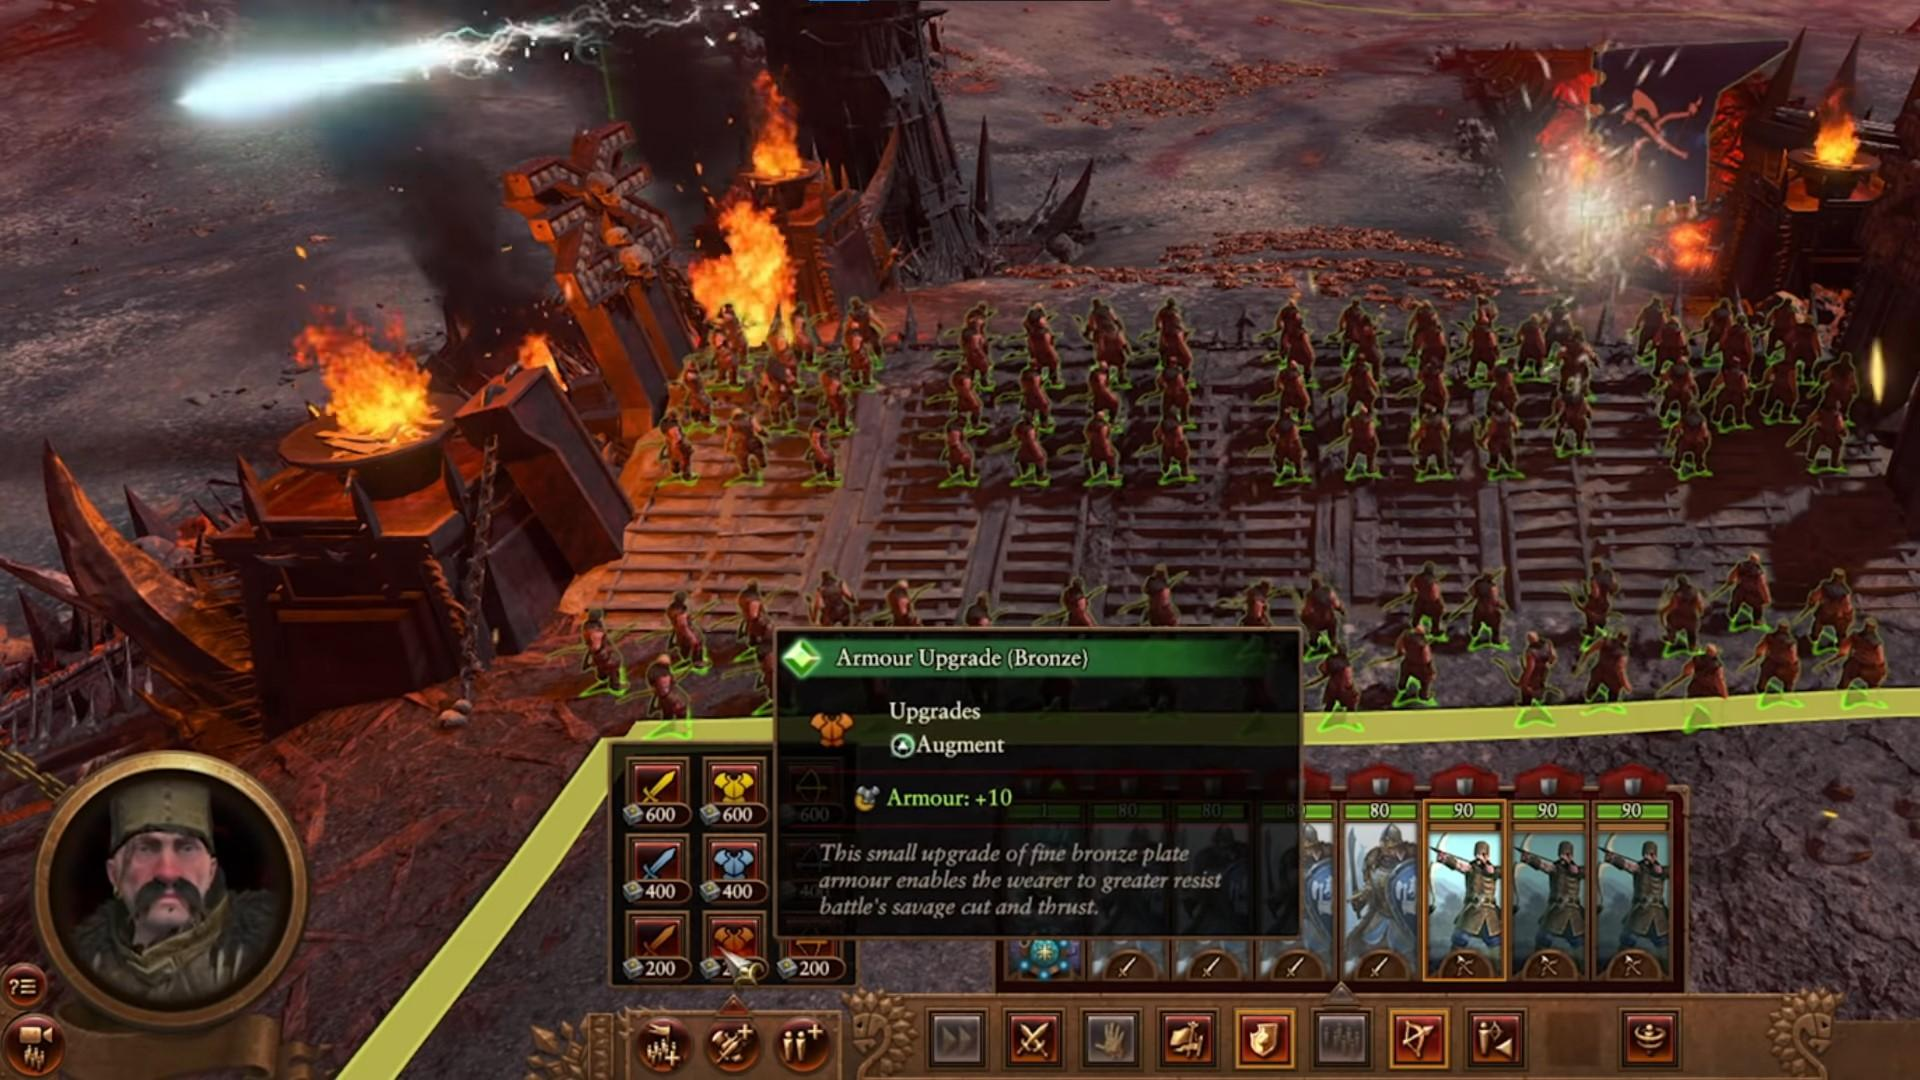 The new in-game Upgrades menu in Total Warhammer 3